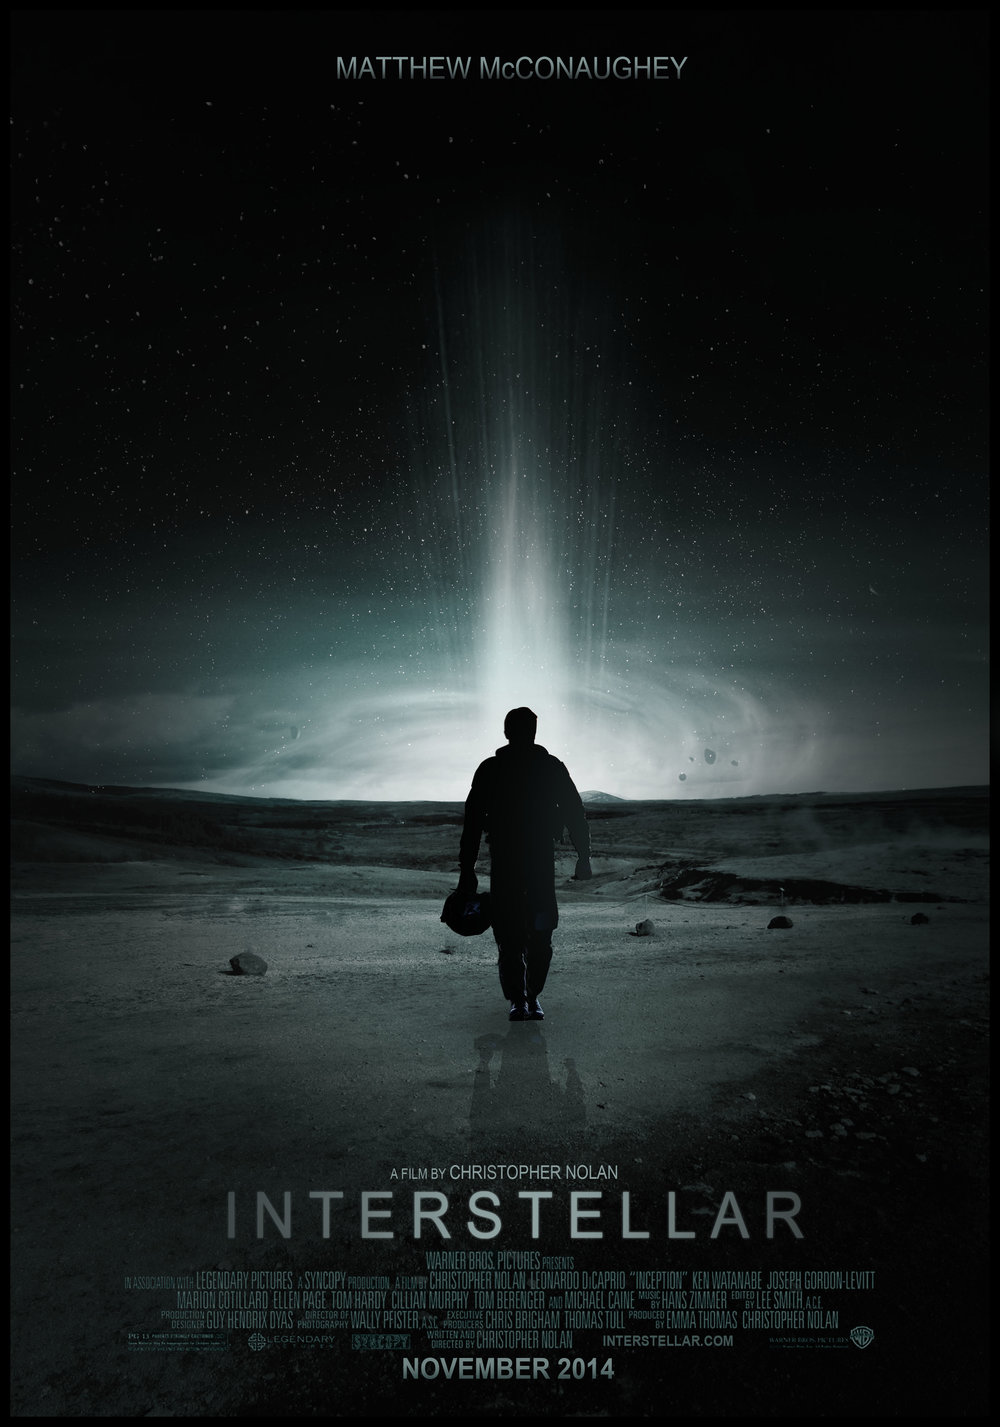 Interstellar (2014) - Directed by: Christopher NolanStarring: Matthew McConaughey, Anne Hathaway, Jessica Chastain, John Lithgow, Timothee Chalamet, David Oyelowo, Wes Bently, Michael Caine, Casey Affleck, Matt Damon, Topher Grace, Mackenzie FoyRated: PG-13 for Some Intense Perilous Action and Brief Strong LanguageRunning Time: 2 h 49 mTMM Score: 4 stars out of 5STRENGTHS: Directing, Writing, Soundtrack, Cinematography, Acting, Visual EffectsWEAKNESSES: Cheesy Climax